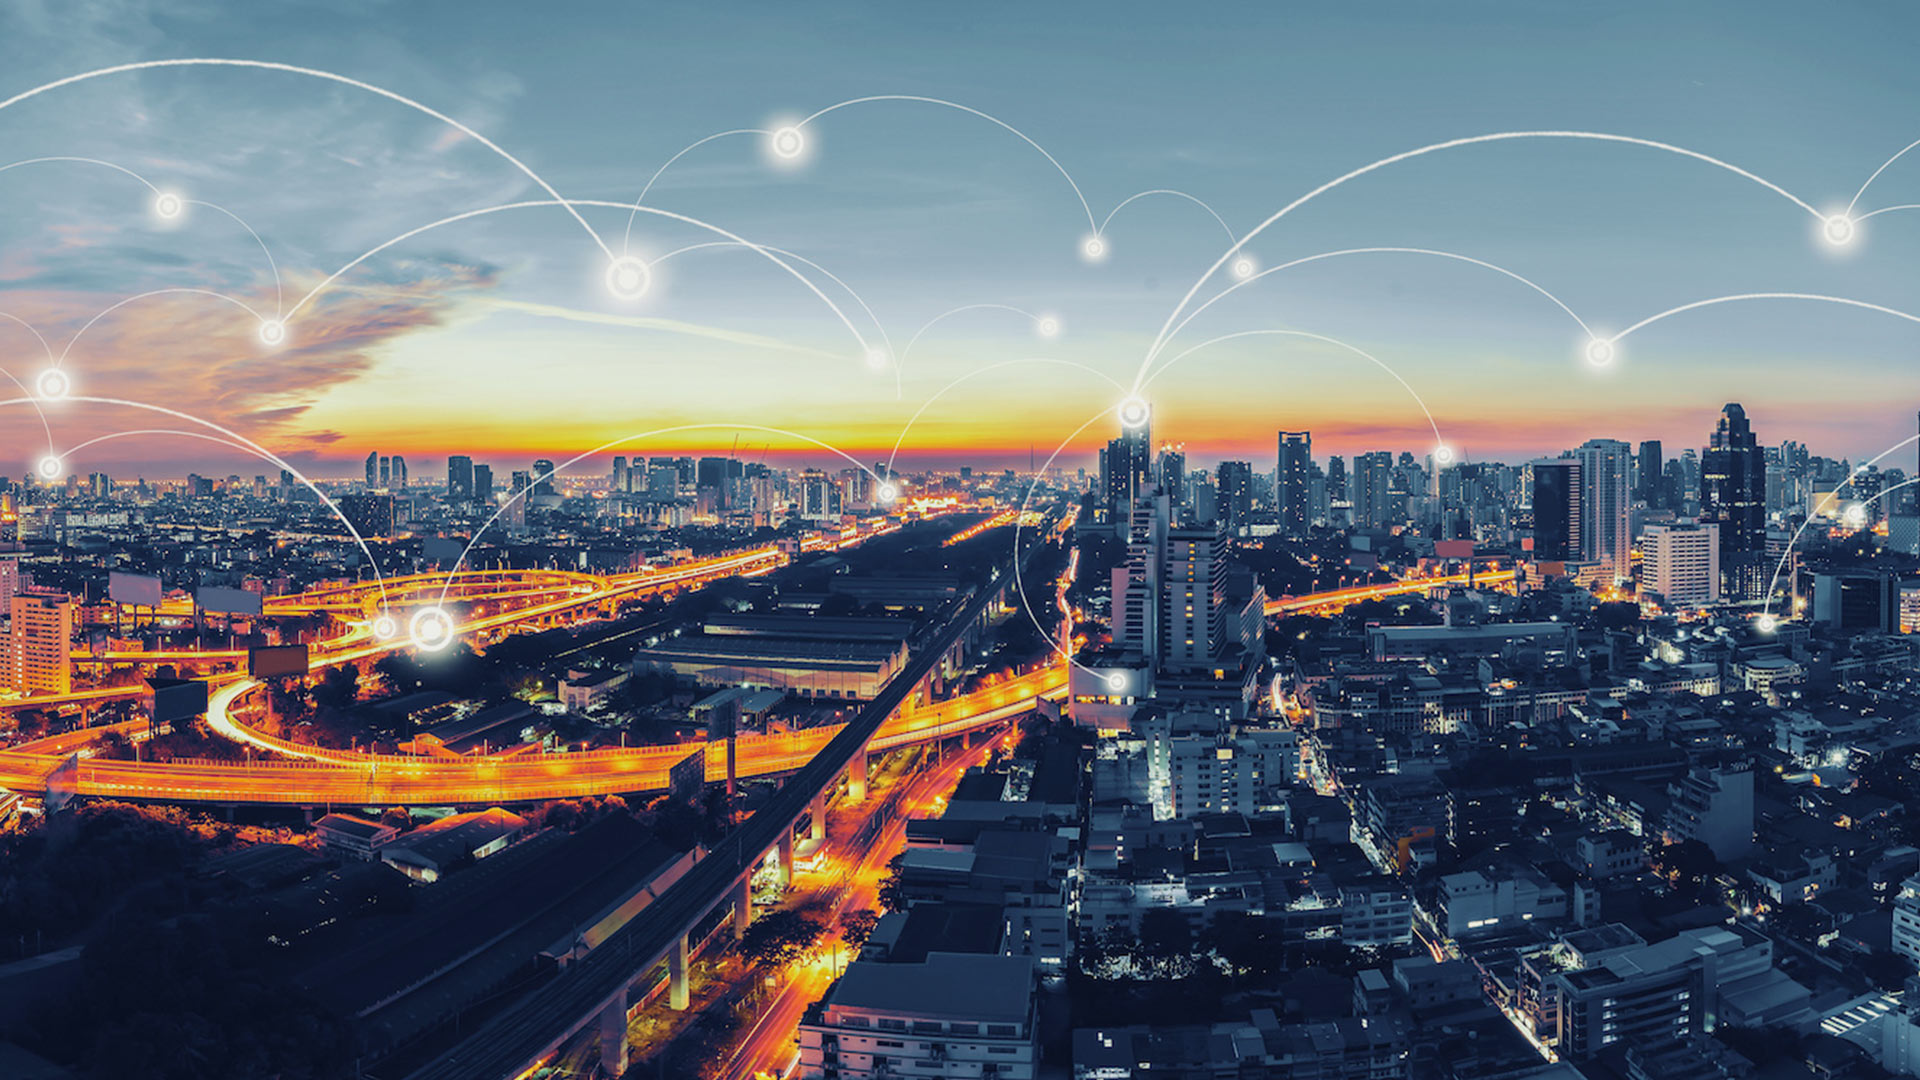 FAST AND RELIABLE FIBRE & WIRELESS INTERNET